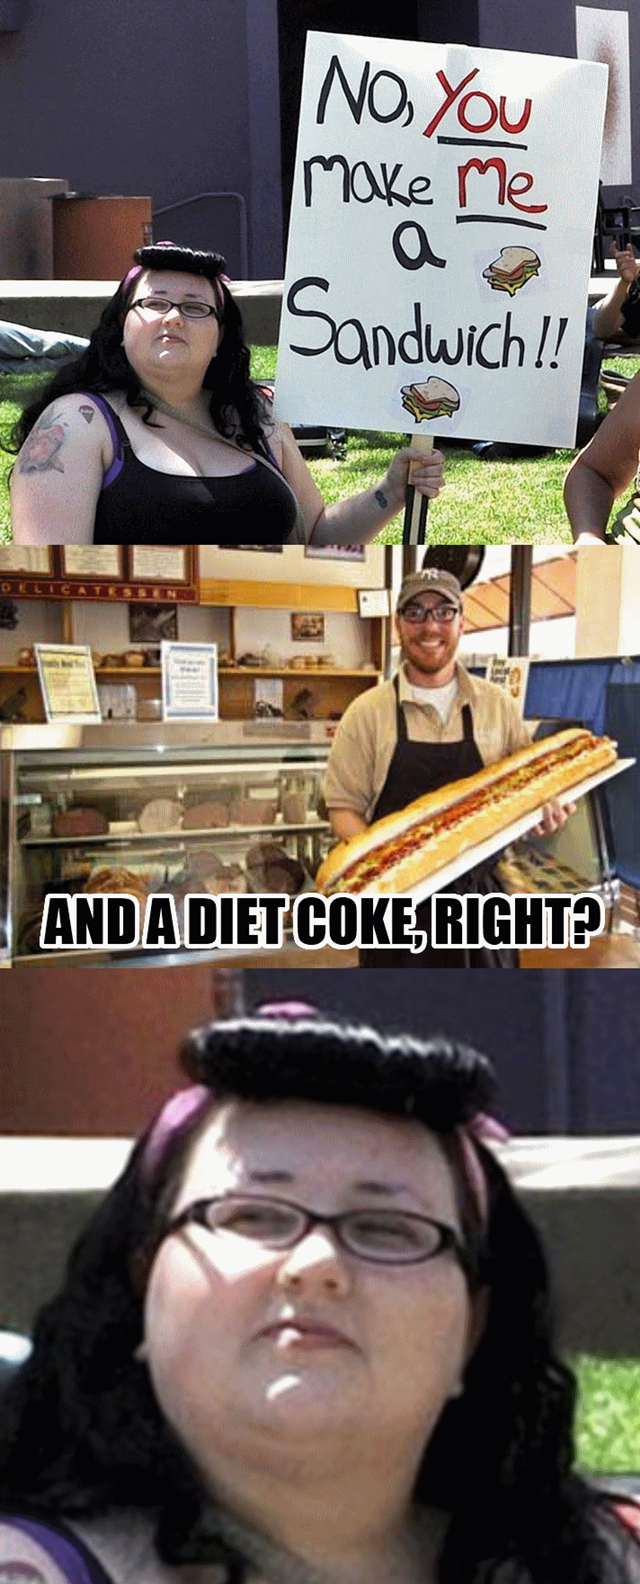 [Image: now-you-make-me-a-sandwich-and-a-diet-coke-right.png]